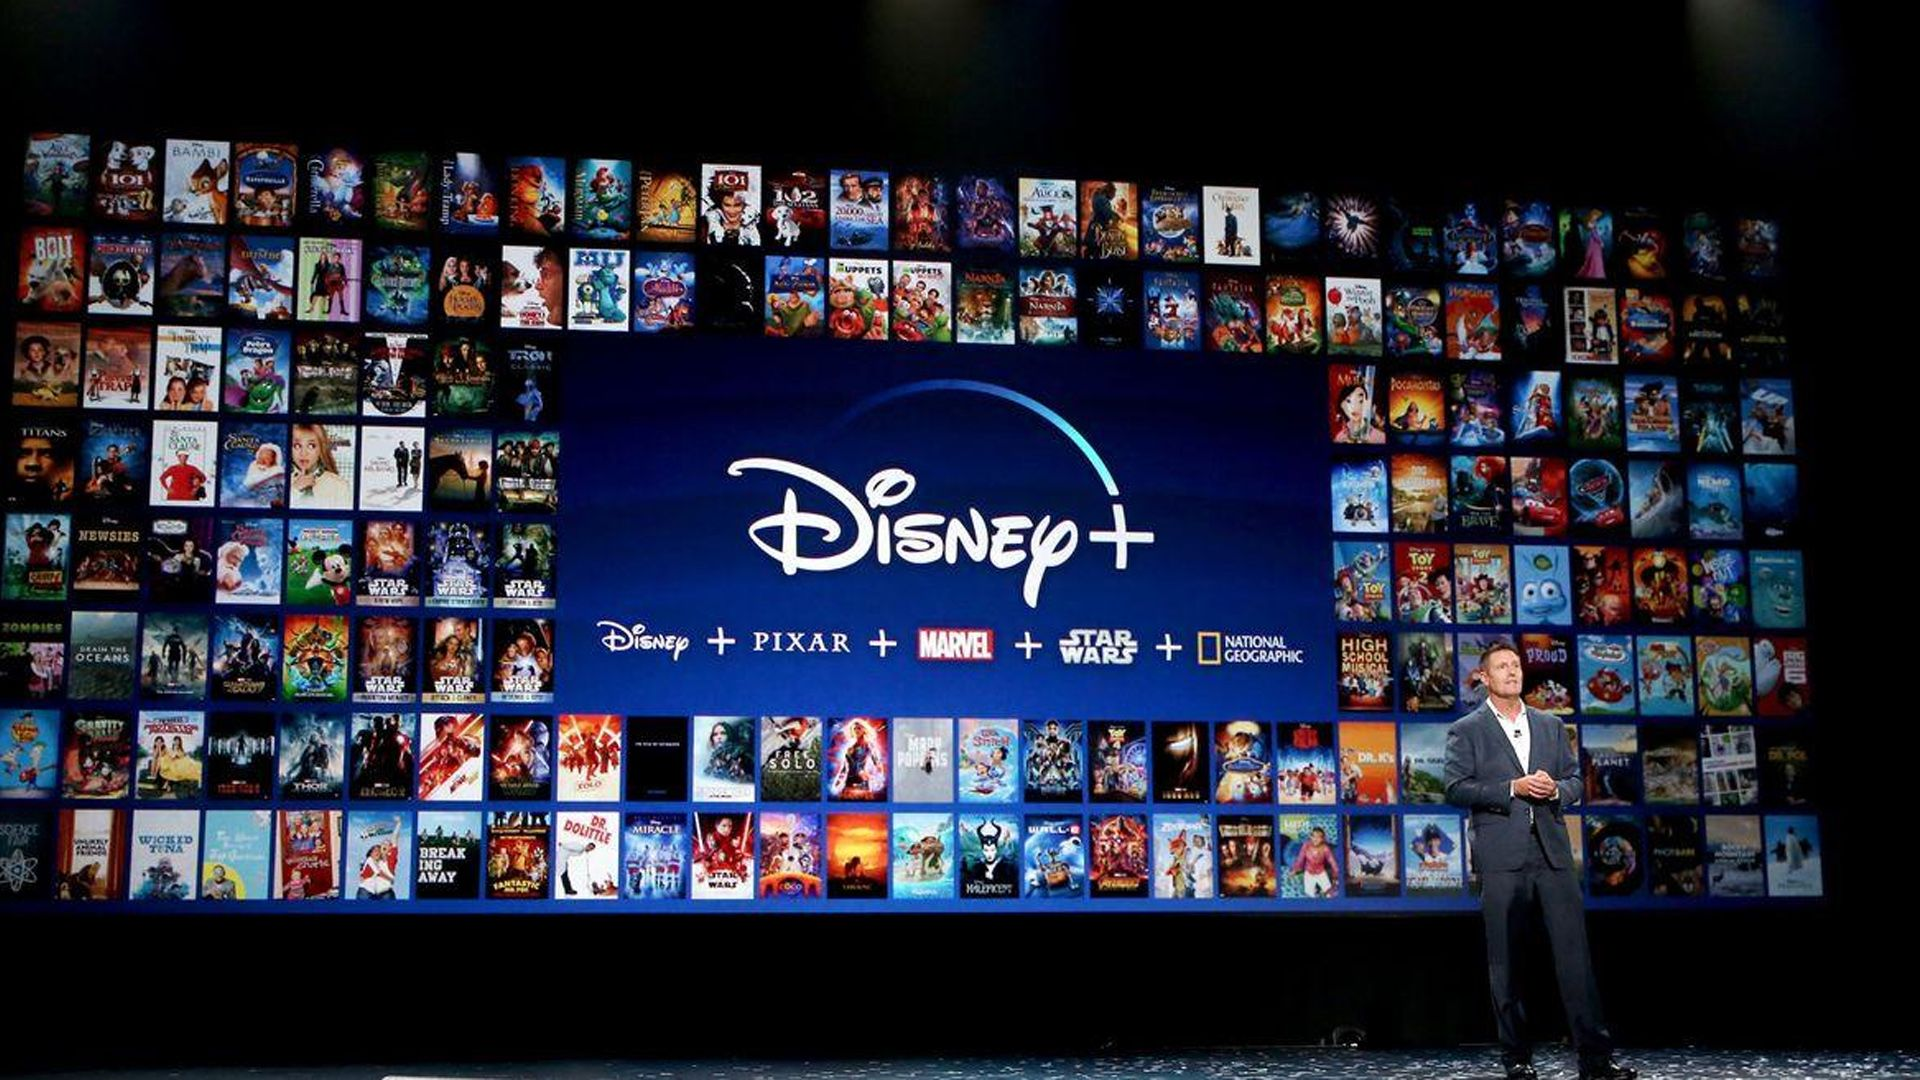 Disney Plus Movies Coming In March 2020 May 2020 In 2020 Disney Plus Disney App Streaming Movies